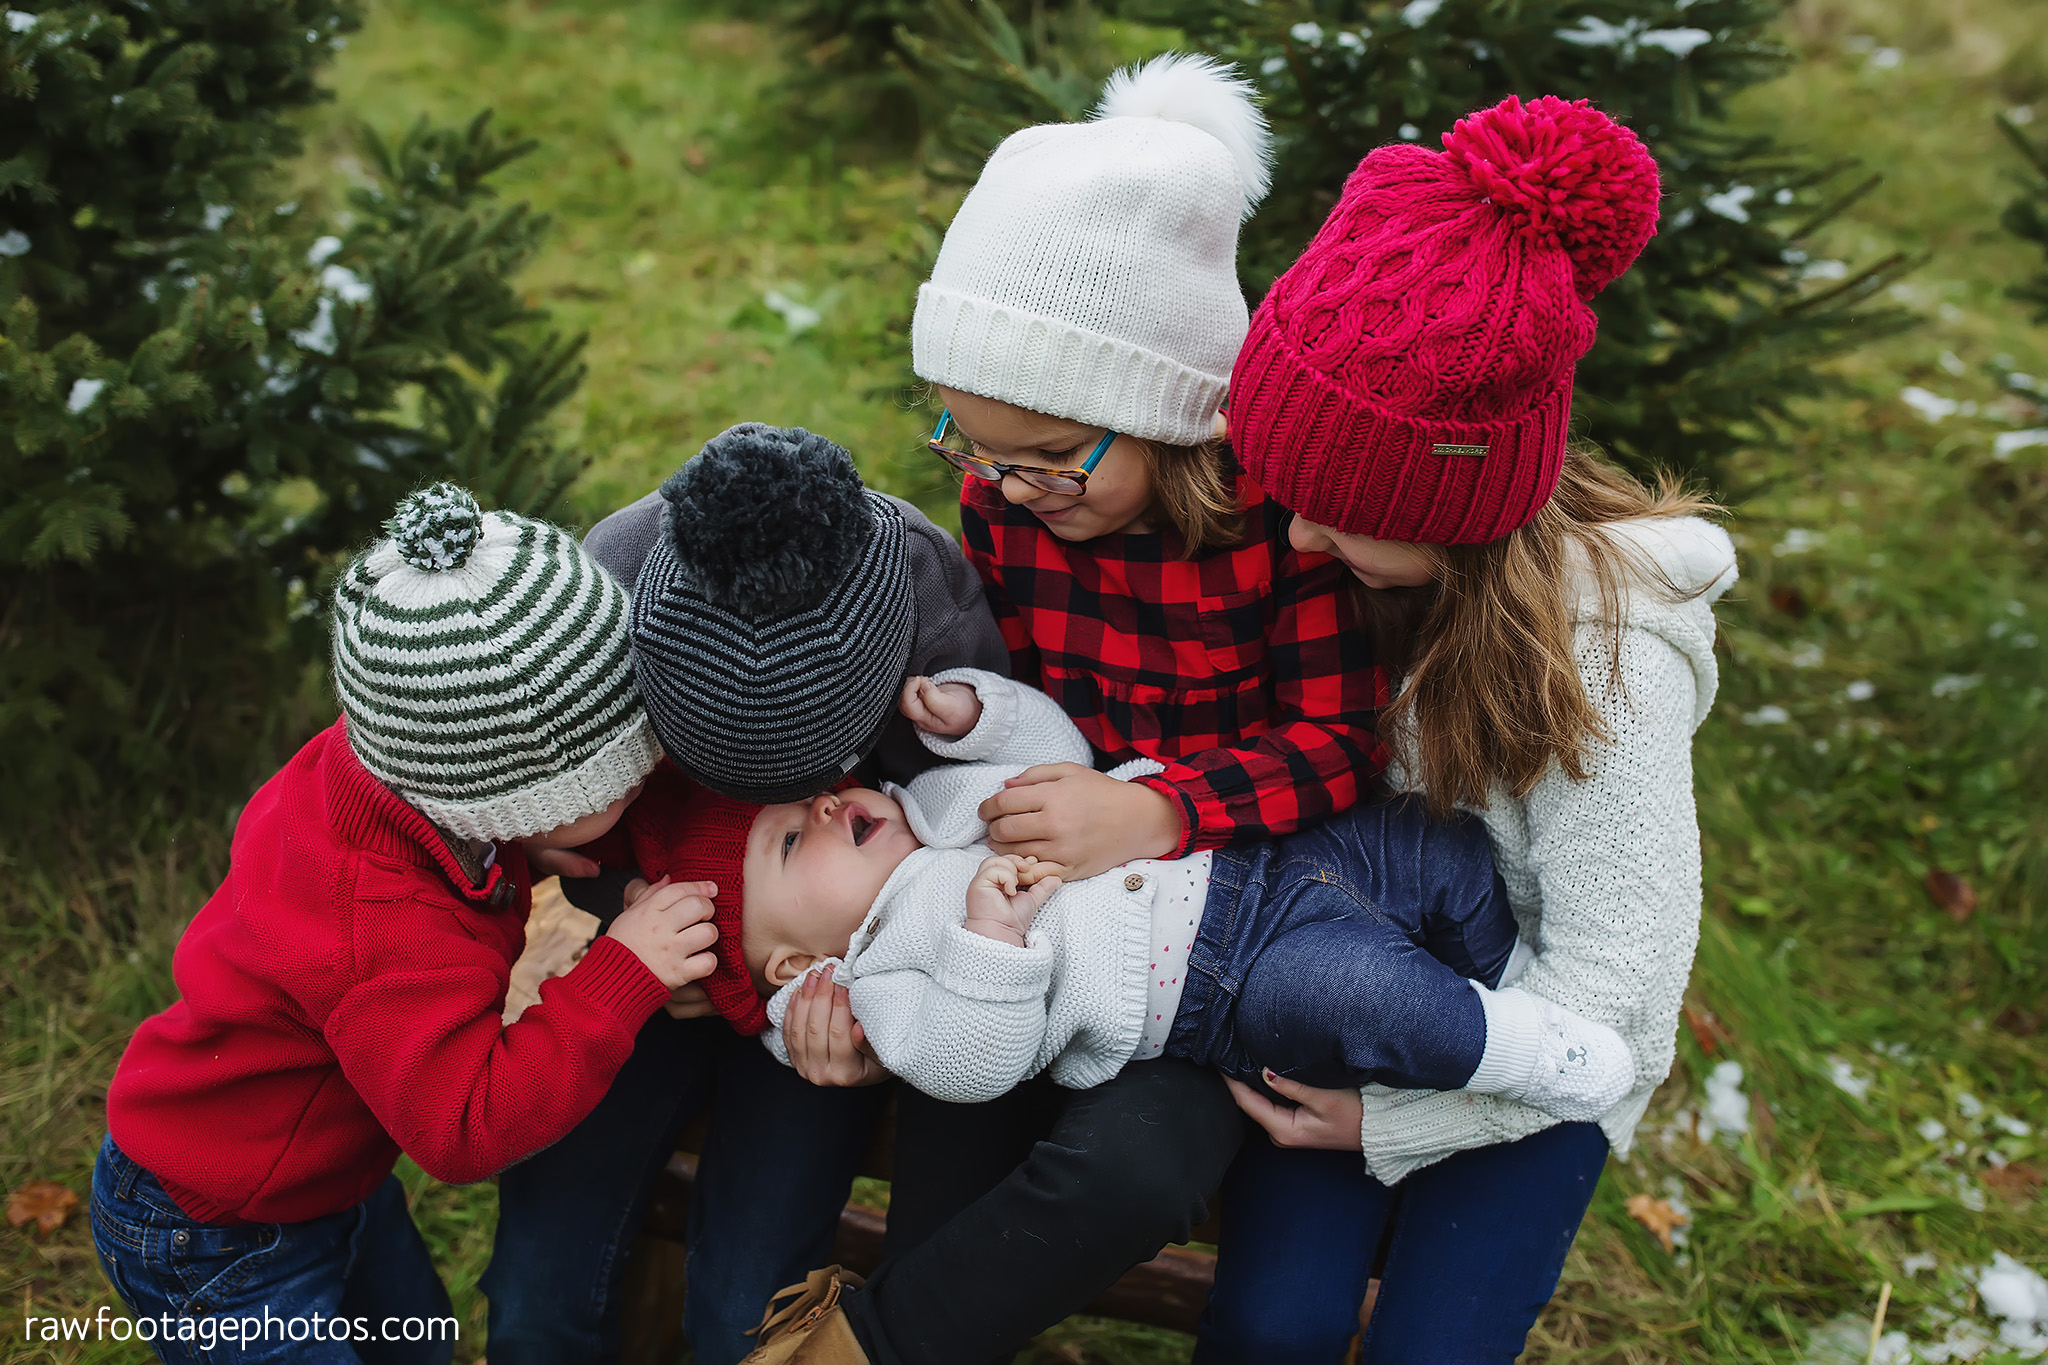 london_ontario_family_photographer-raw_footage_photography-tree_farm_minis-christmas_sessions-winter0035.jpg